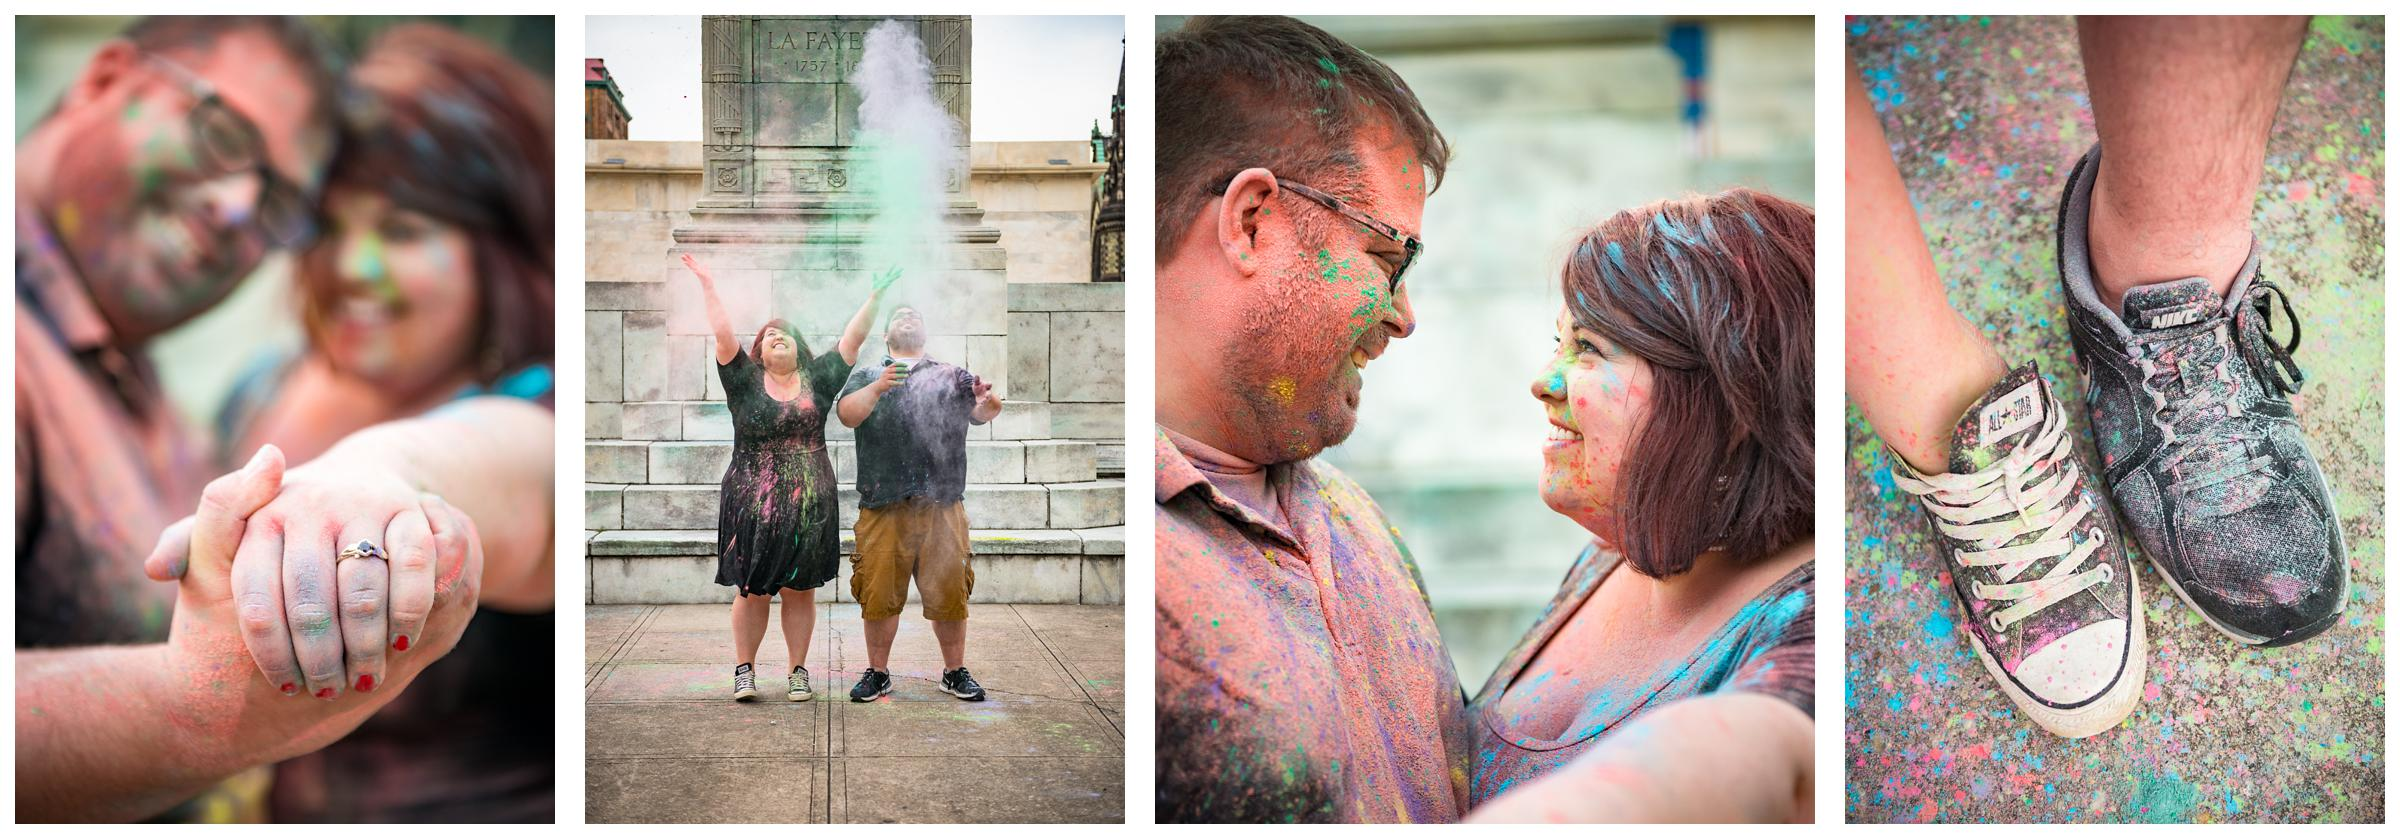 engaged couple playing with colored powder paint